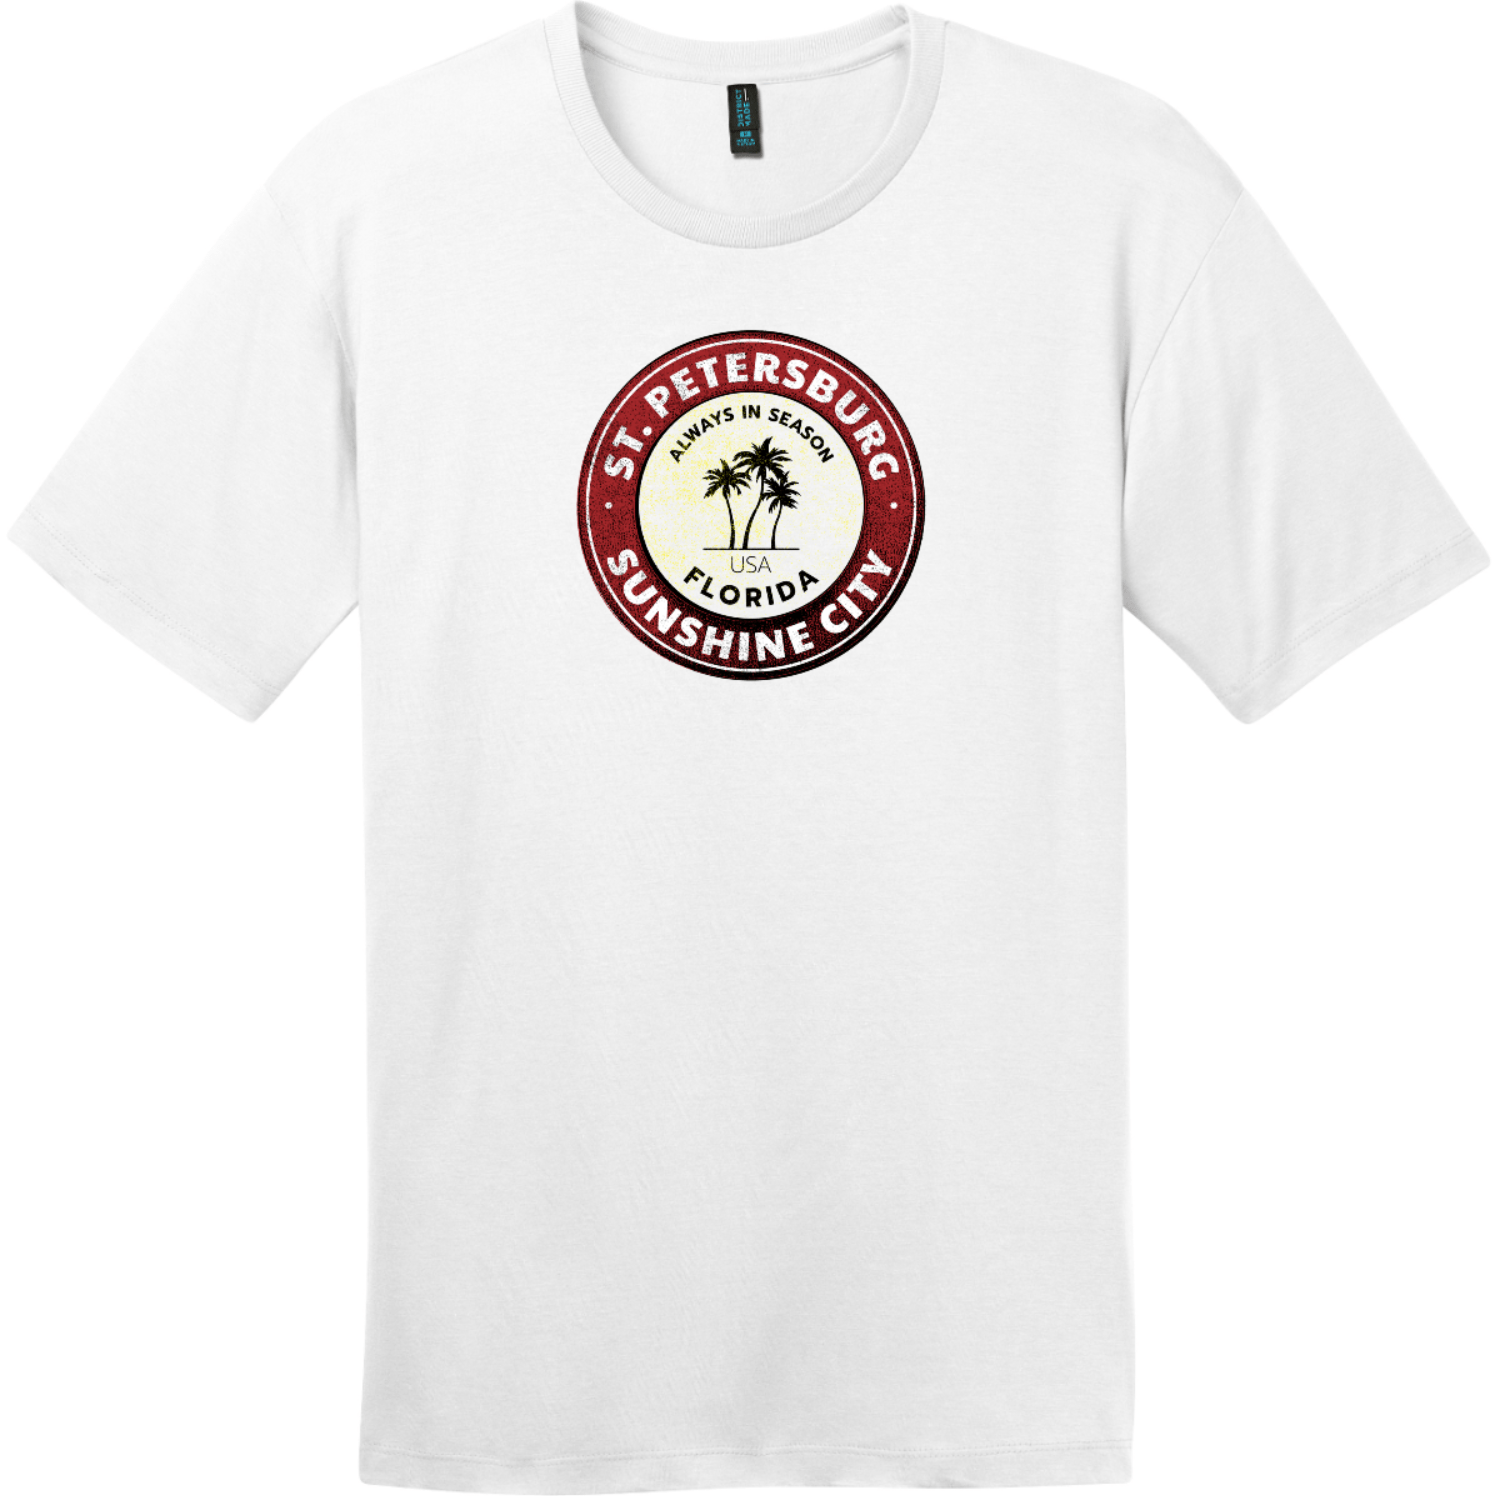 St. Petersburg Sunshine City Florida T-Shirt Bright White District Perfect Weight Tee DT104